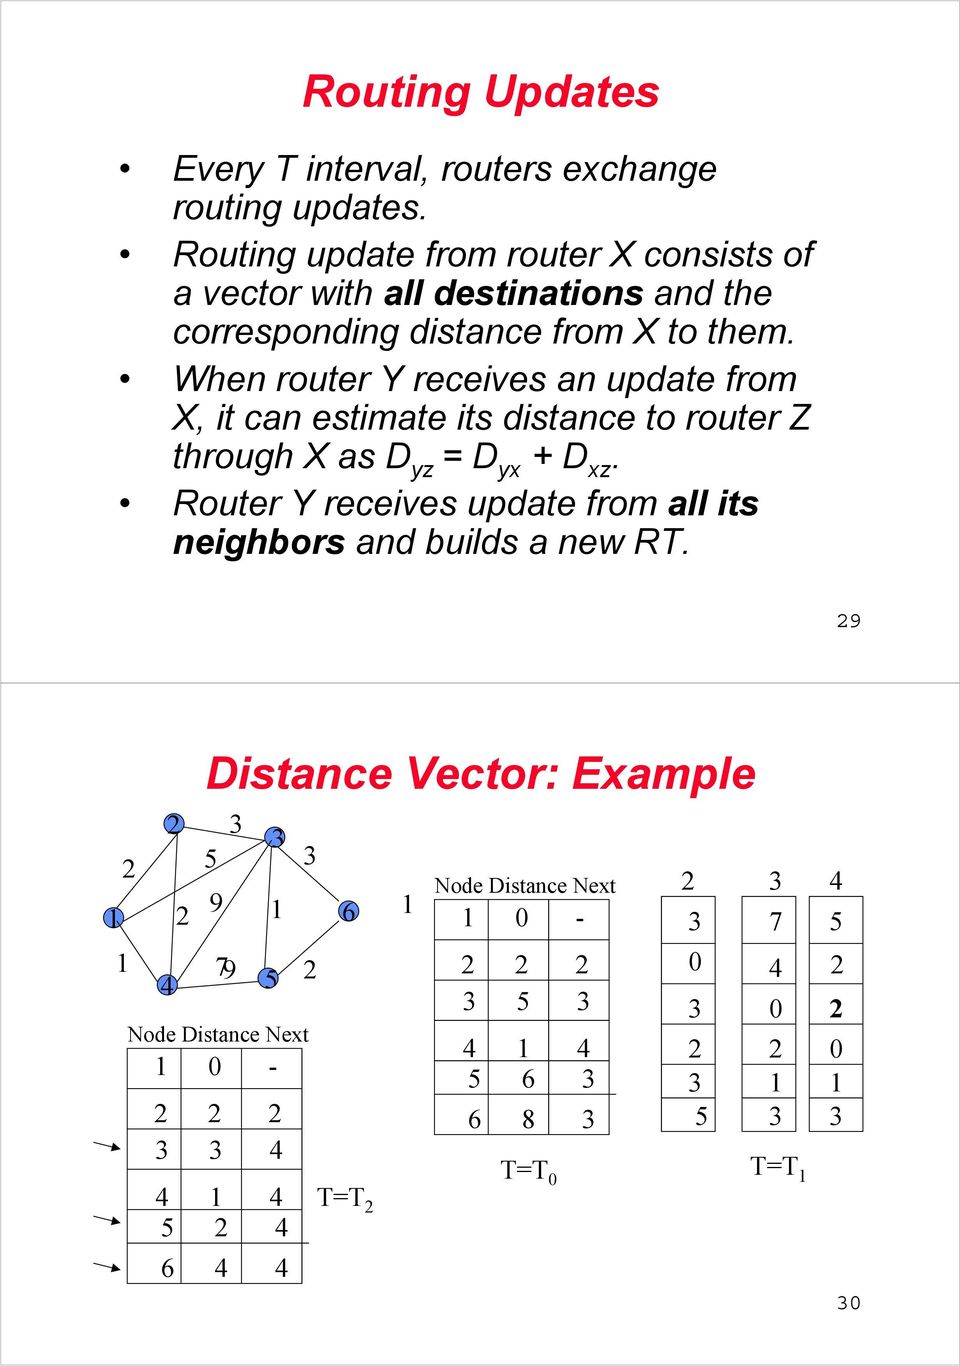 When router Y receives an update from X, it can estimate its distance to router Z through X as D yz = D yx + D xz.